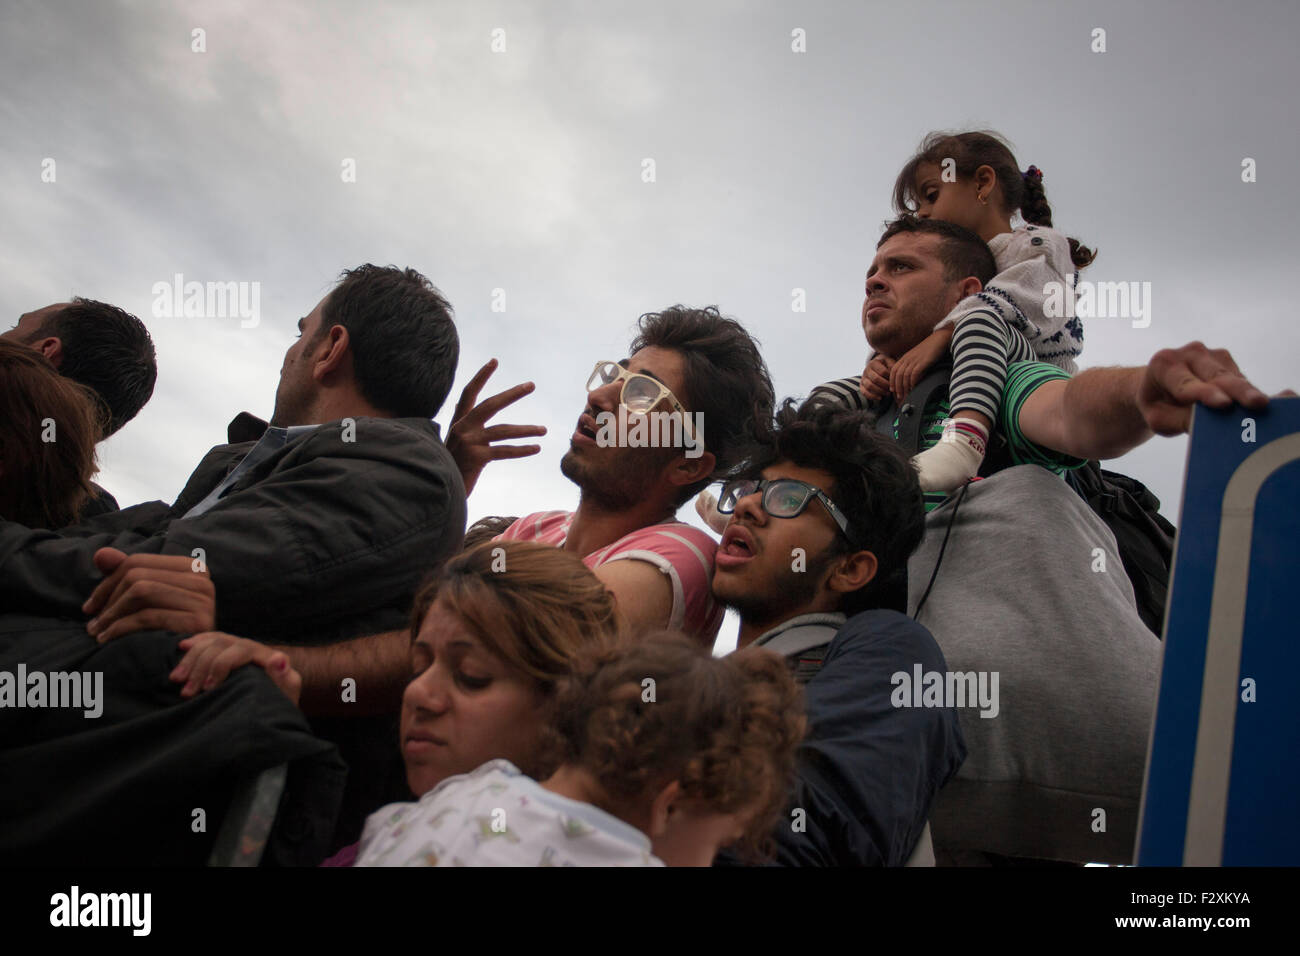 Refugees, waiting to cross into the Schengen zone at Rigonce, Slovenia. - Stock Image